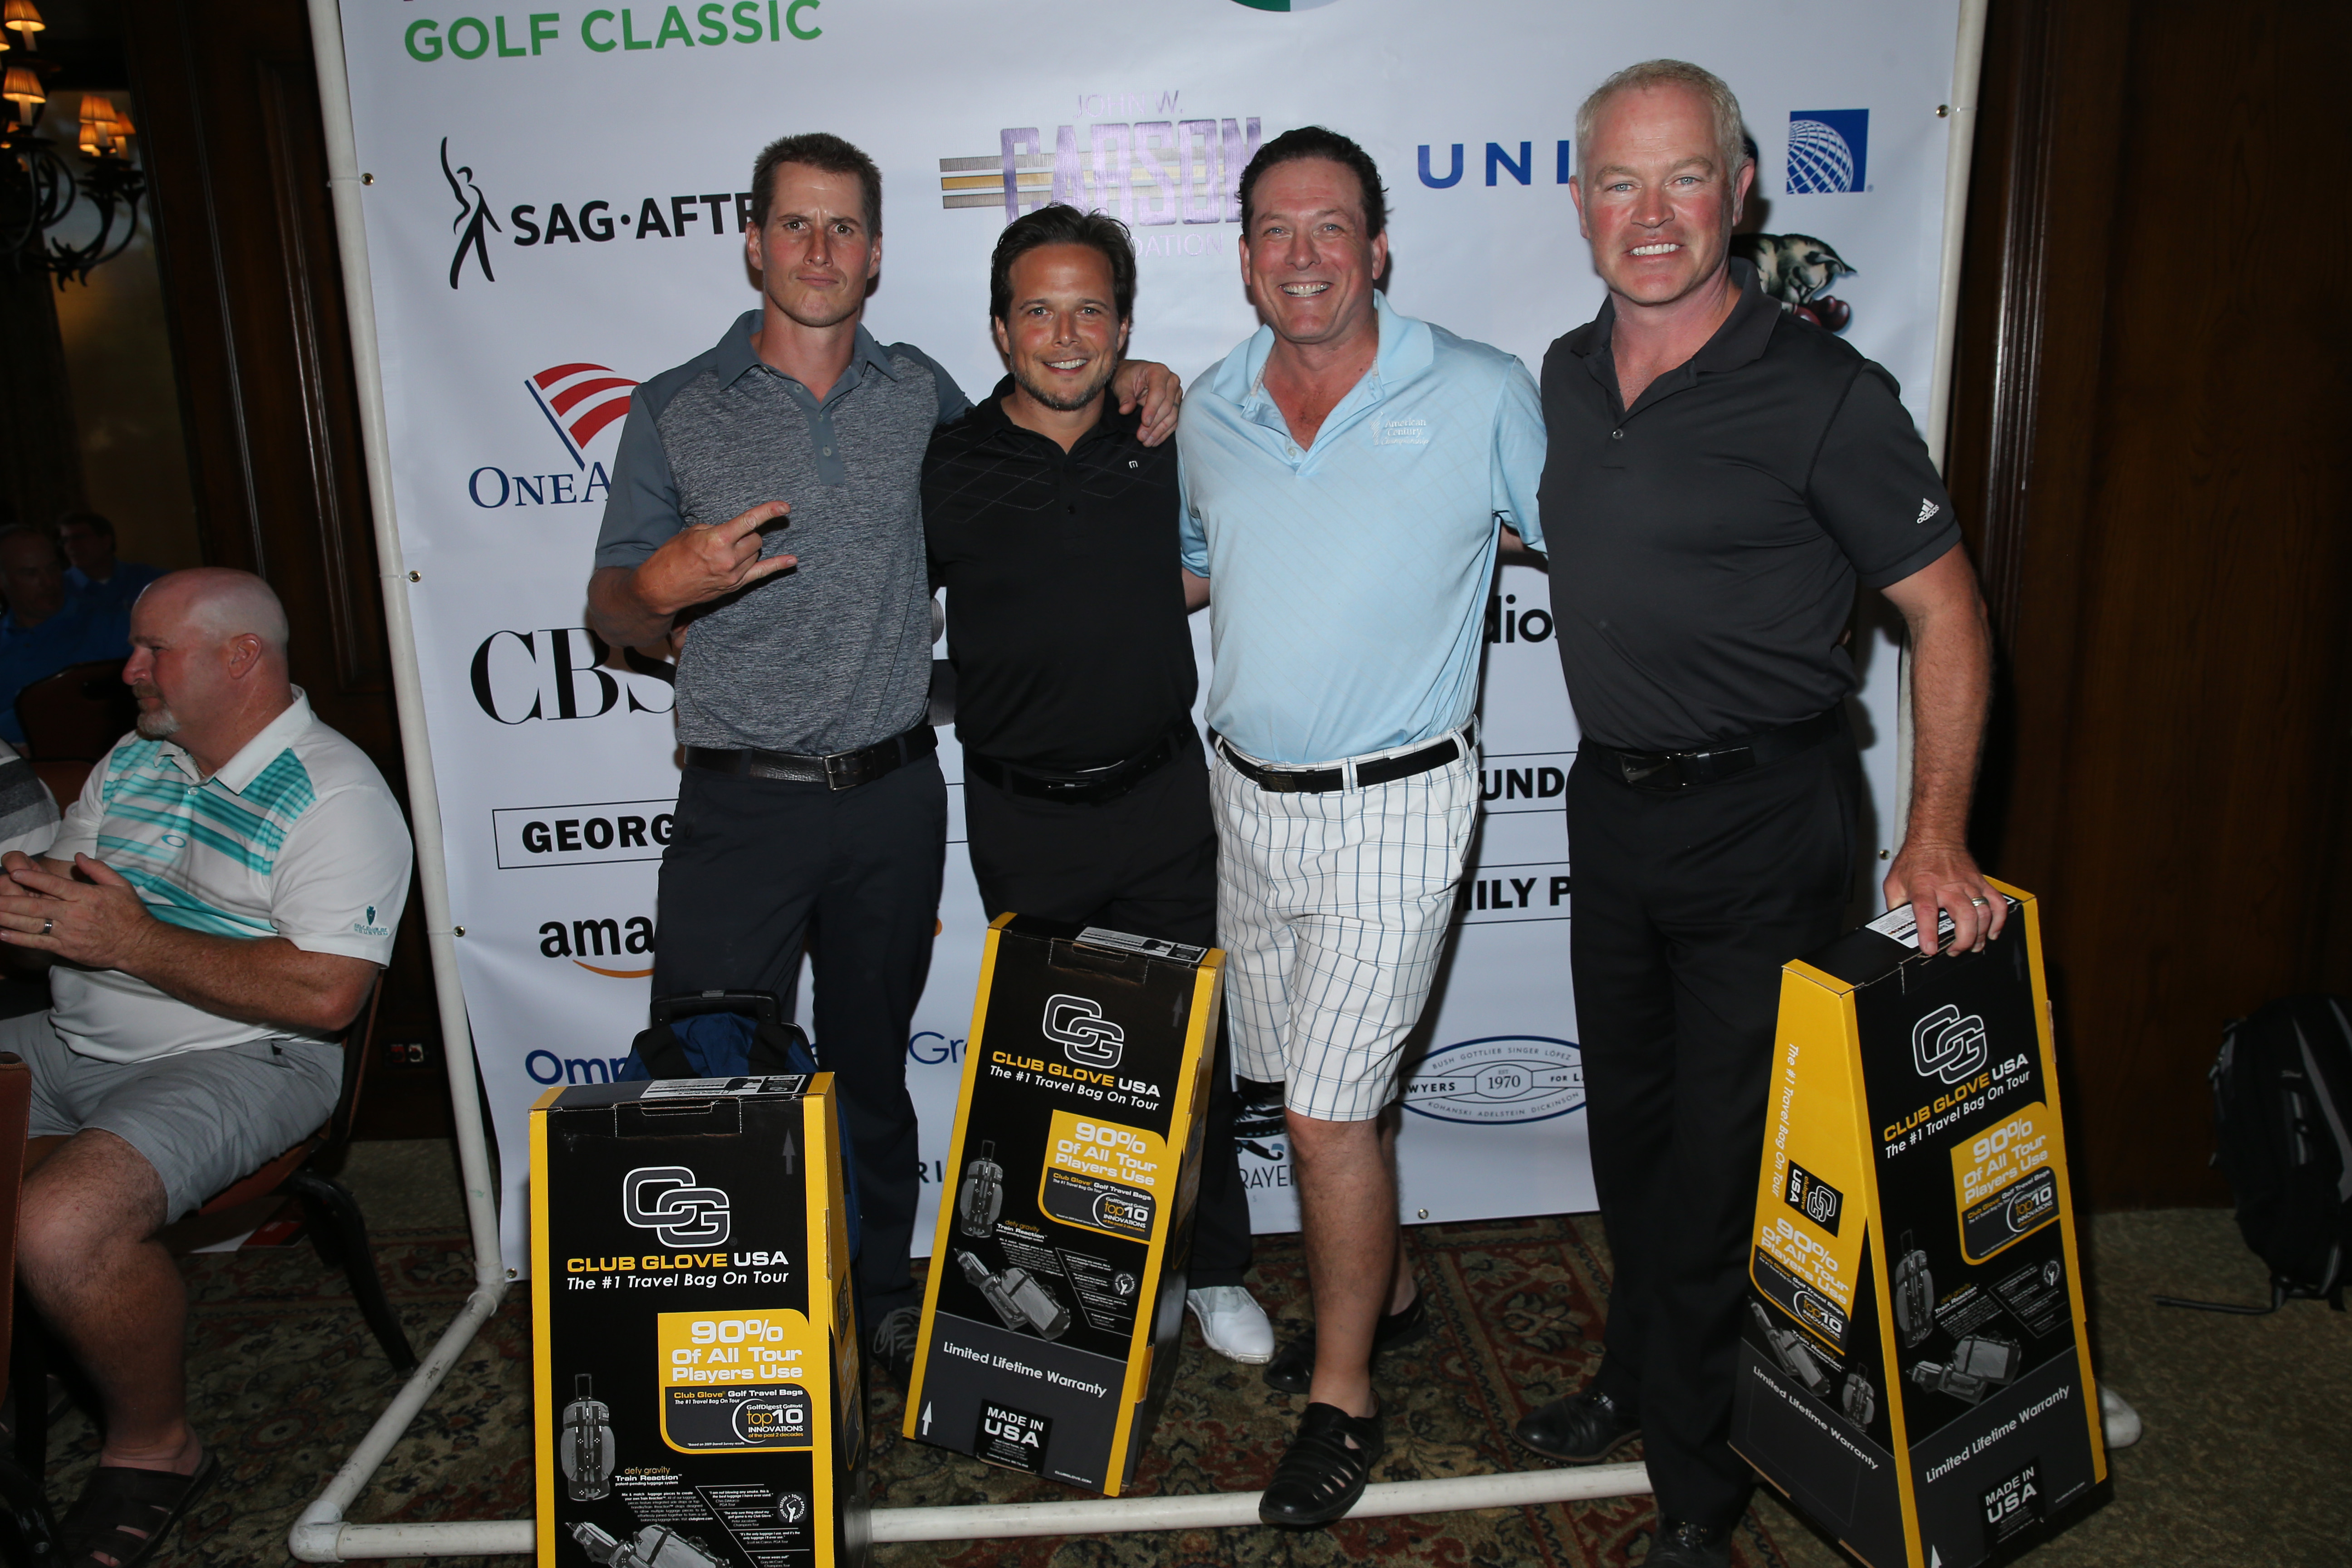 (L-R) Host Brendan Fehr, host Scott Wolf, Anthony Snow and actor Neal McDonough, second place winners of the low net score, pose with prizes during The Screen Actors Guild Foundation's 6th Annual Los Angeles Golf Classic on June 8, 2015 in Burbank, California.  (Photo by Mark Davis/Getty Images for The Screen Actors Guild Foundation)